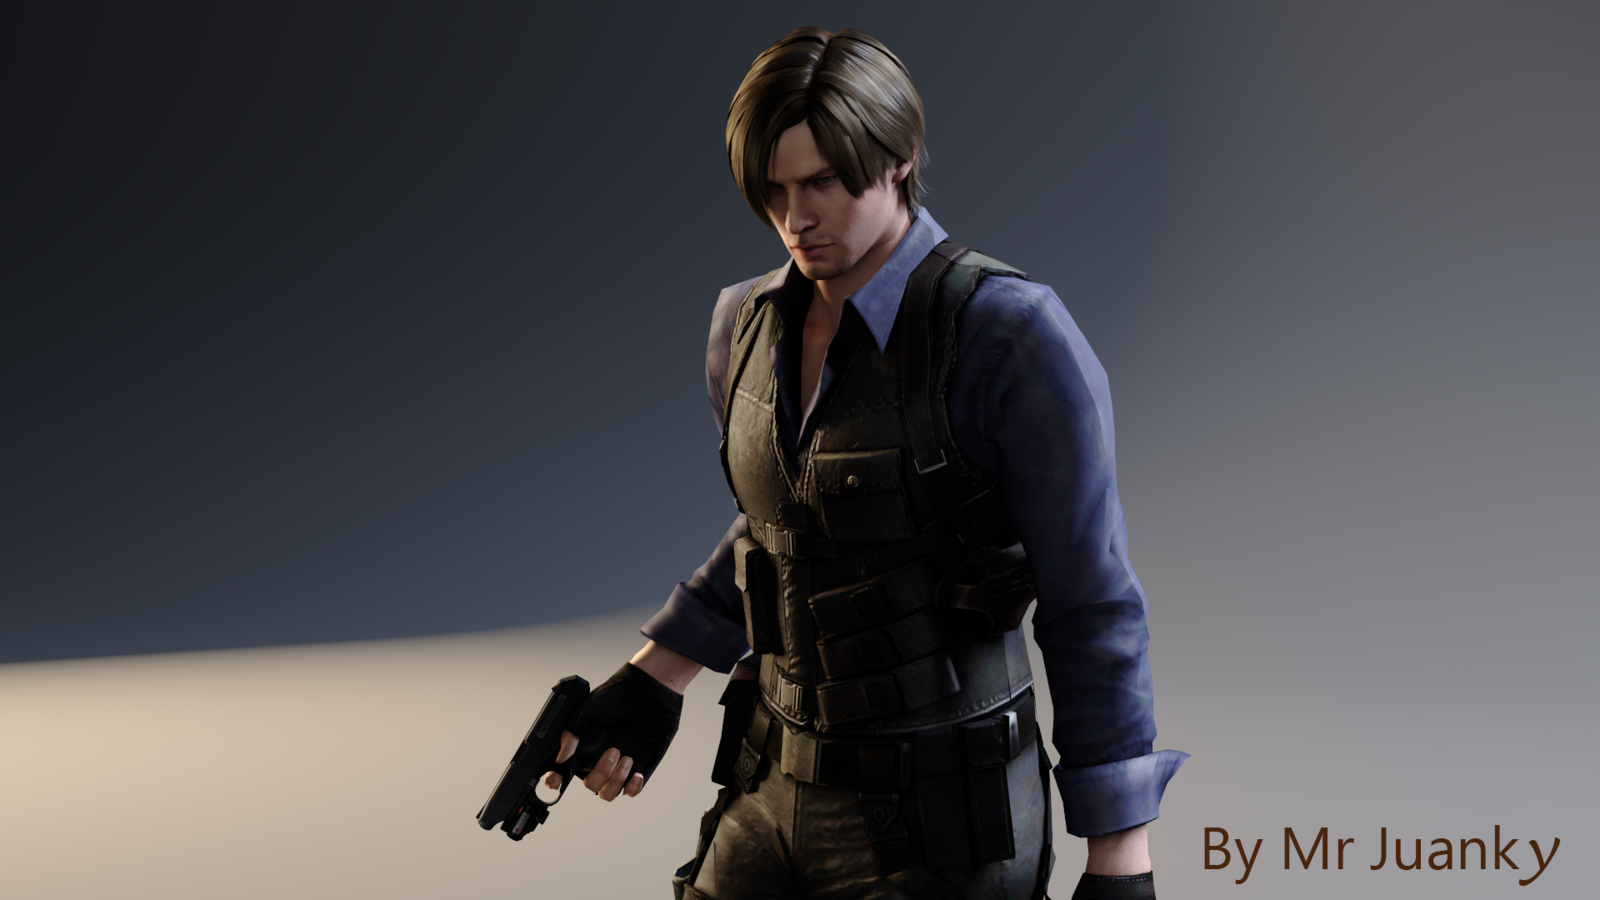 Free Download Leon S Kennedy Asia Outfit Re6 By Mr Juanky